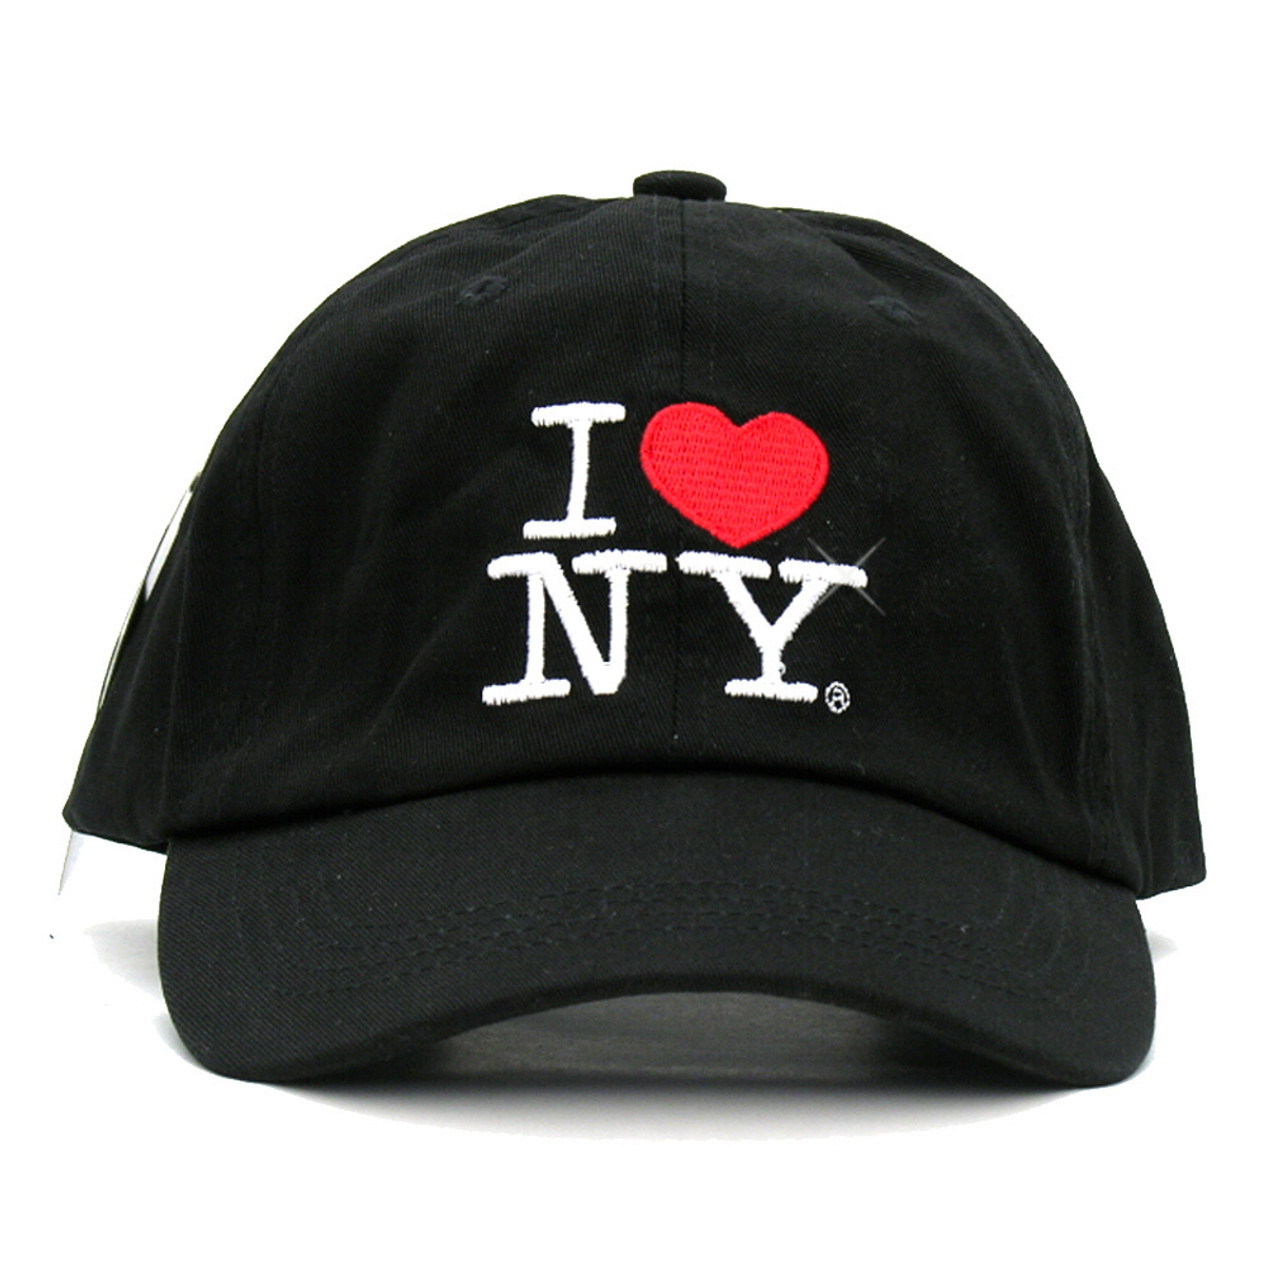 I Love NY Cap Black 8d4acf9a1be